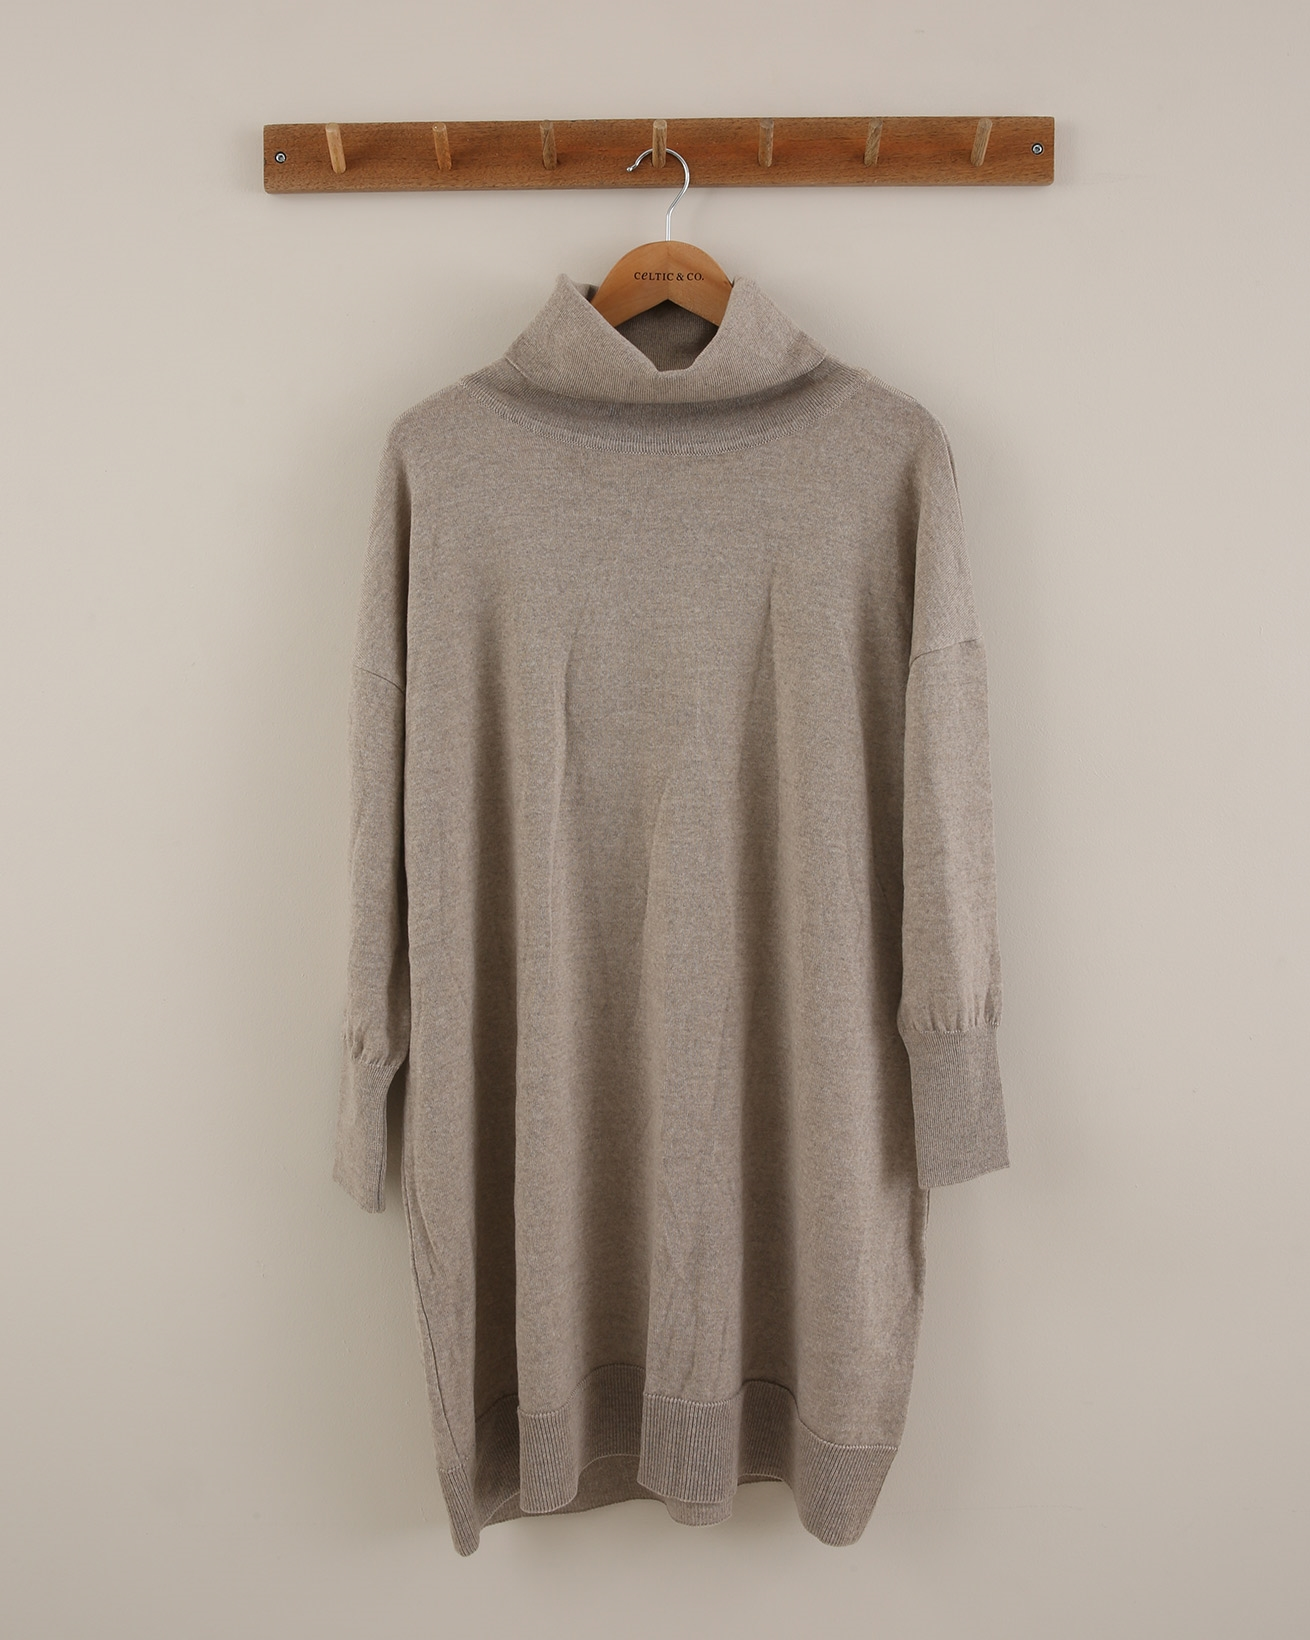 Slouchy Fine Knit Roll Neck Dress - Size Small - Mushroom - 1874